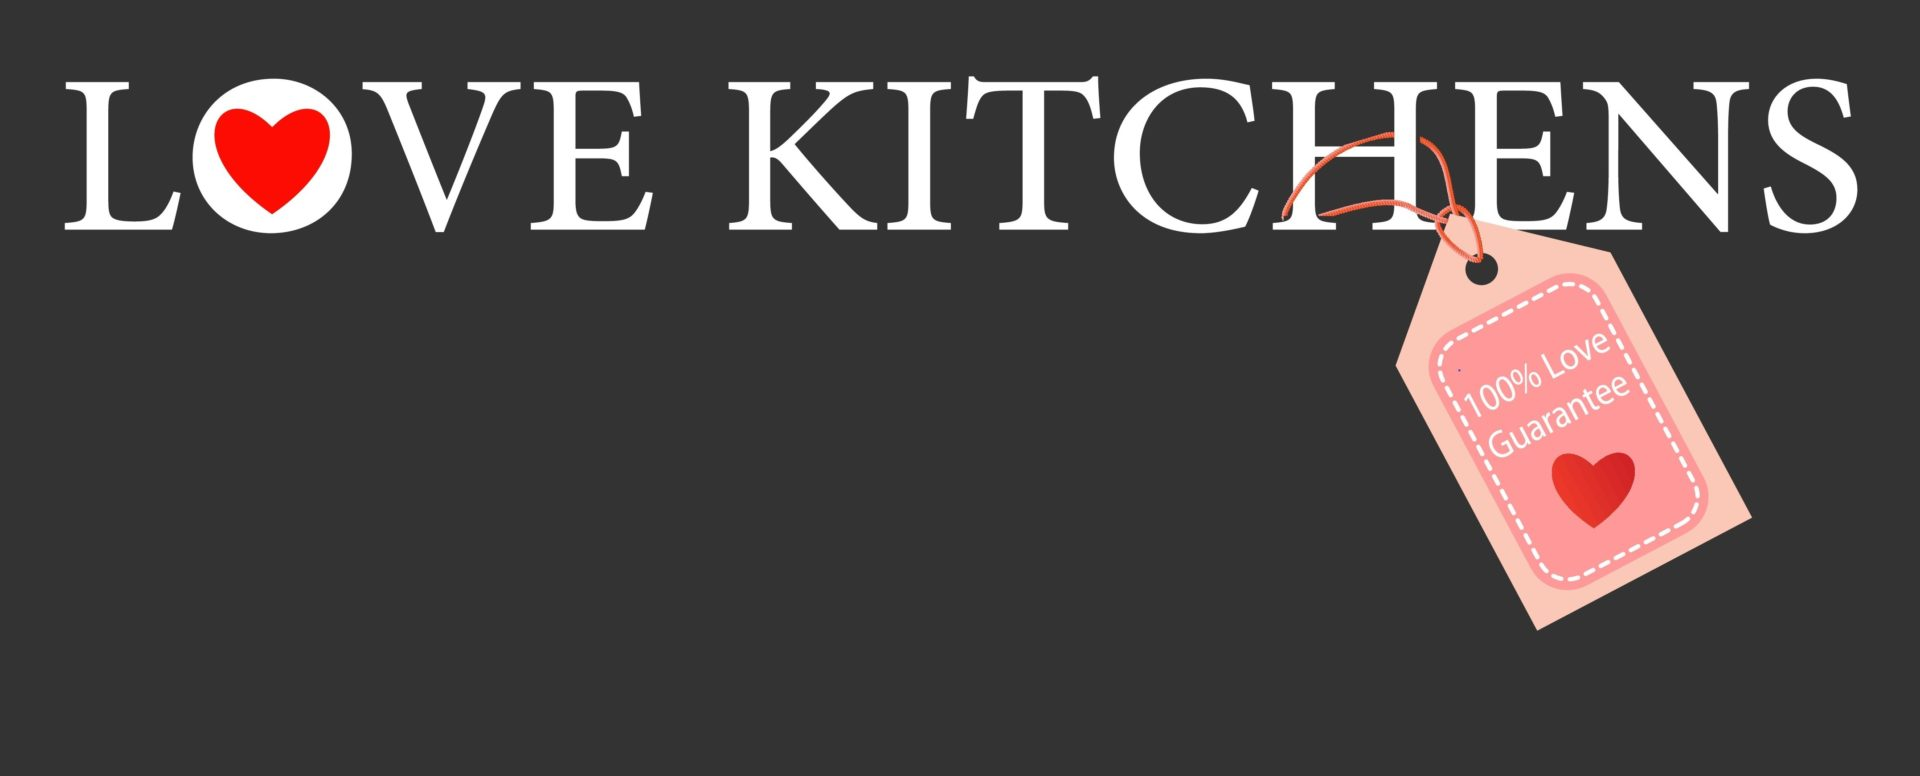 Love Kitchens - Header with Tag